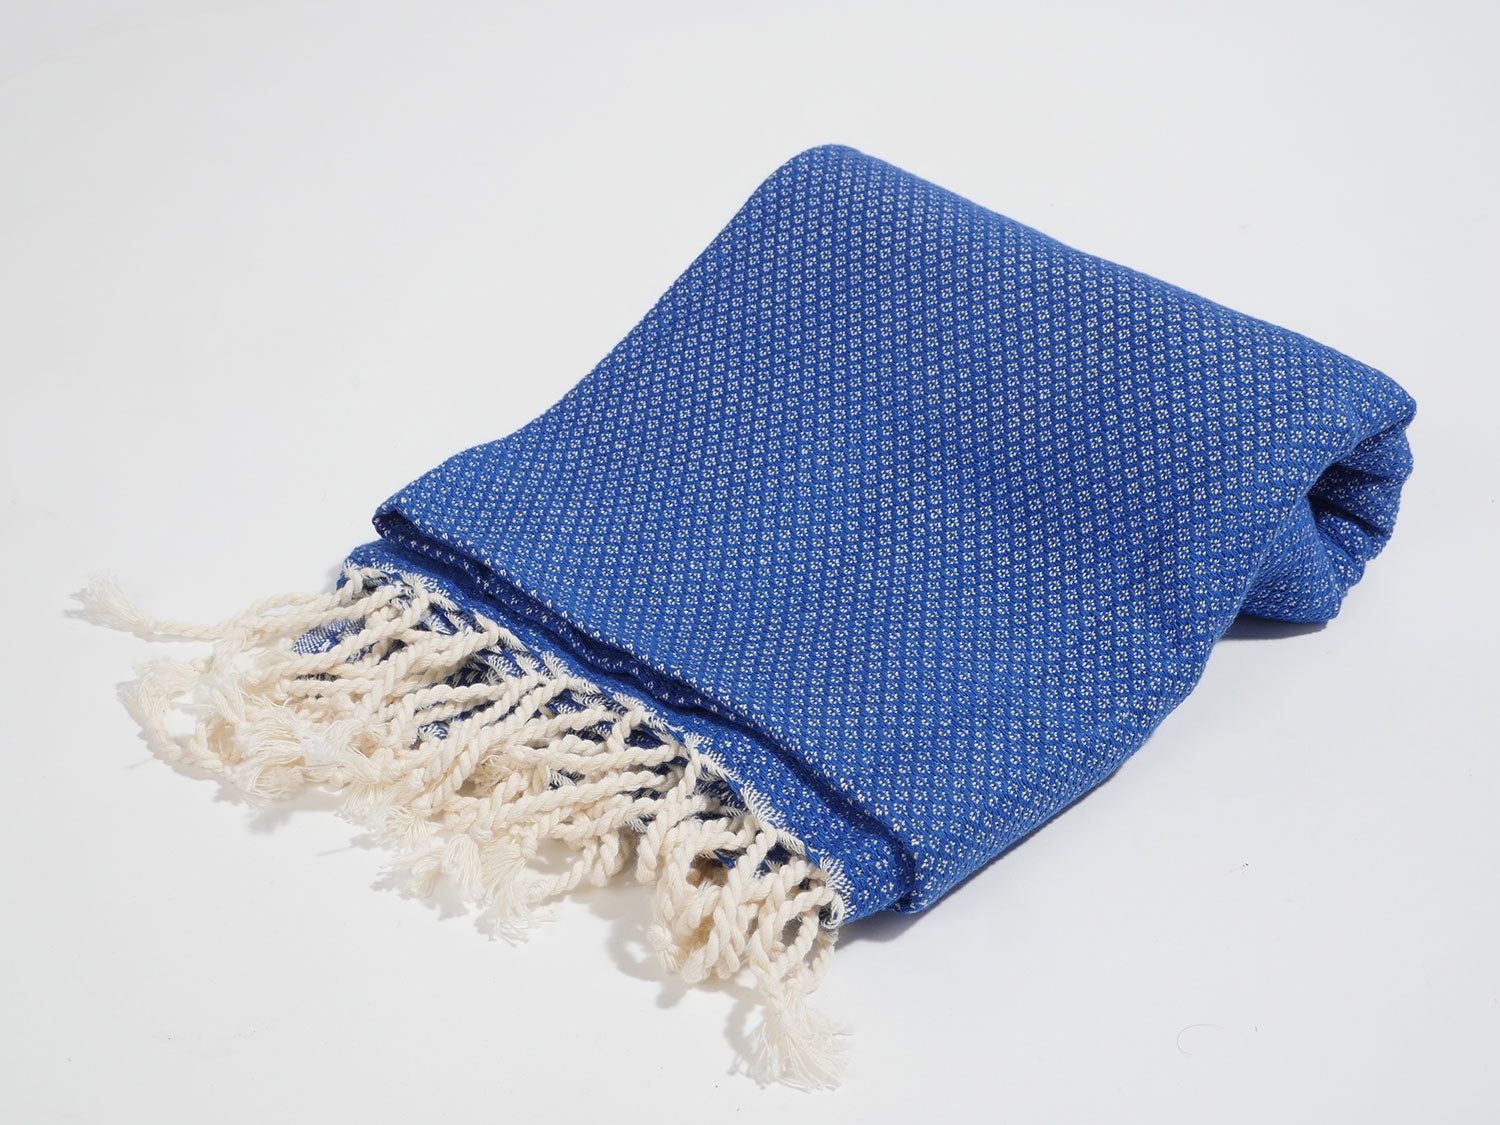 Izla Bal Hamam Towel Royal Blue - Izla